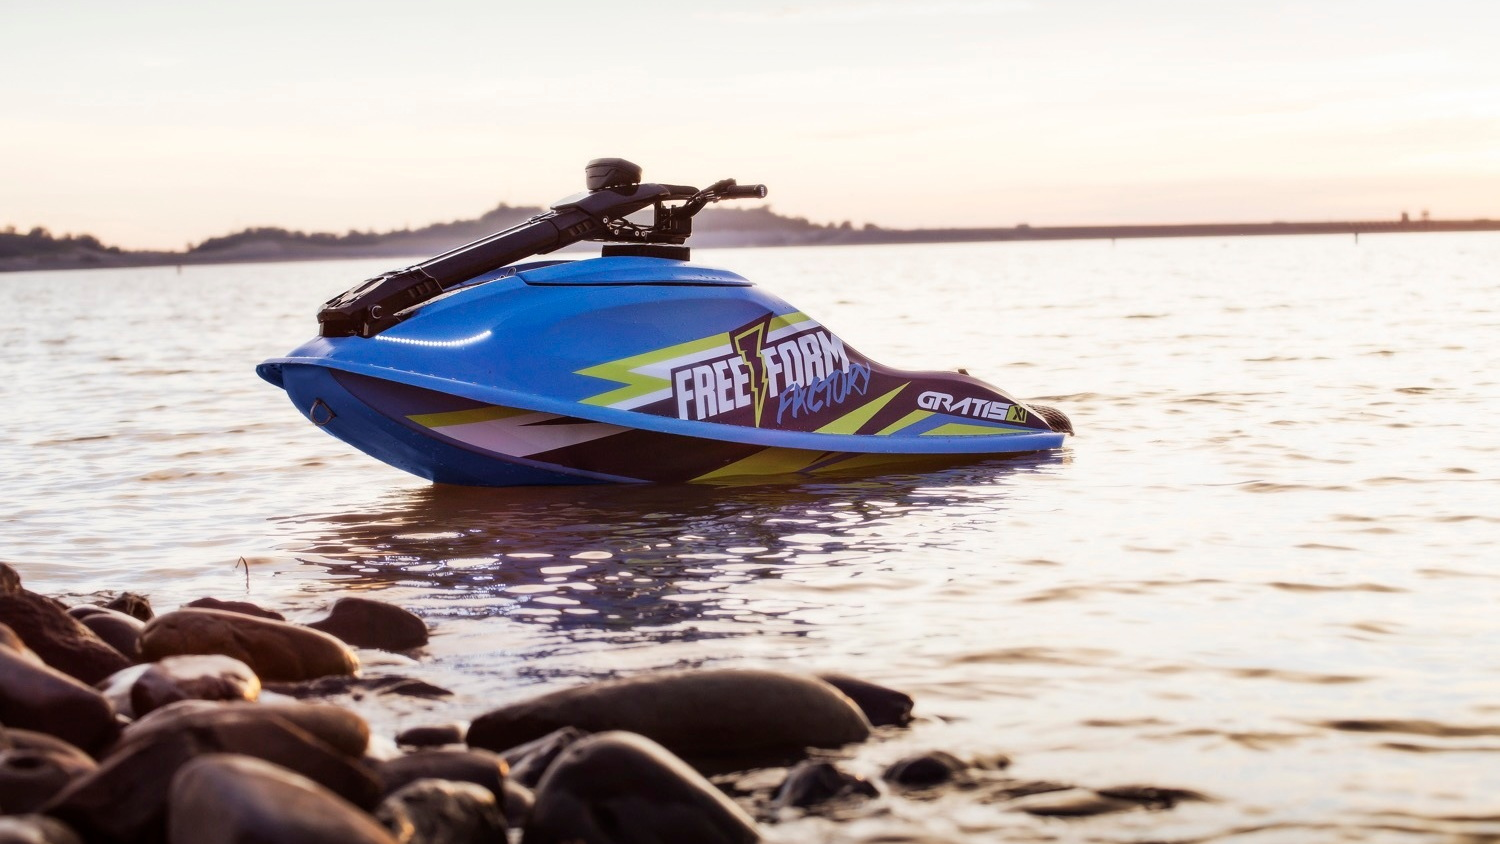 Free Form Factory Gratis X1 electric jet ski